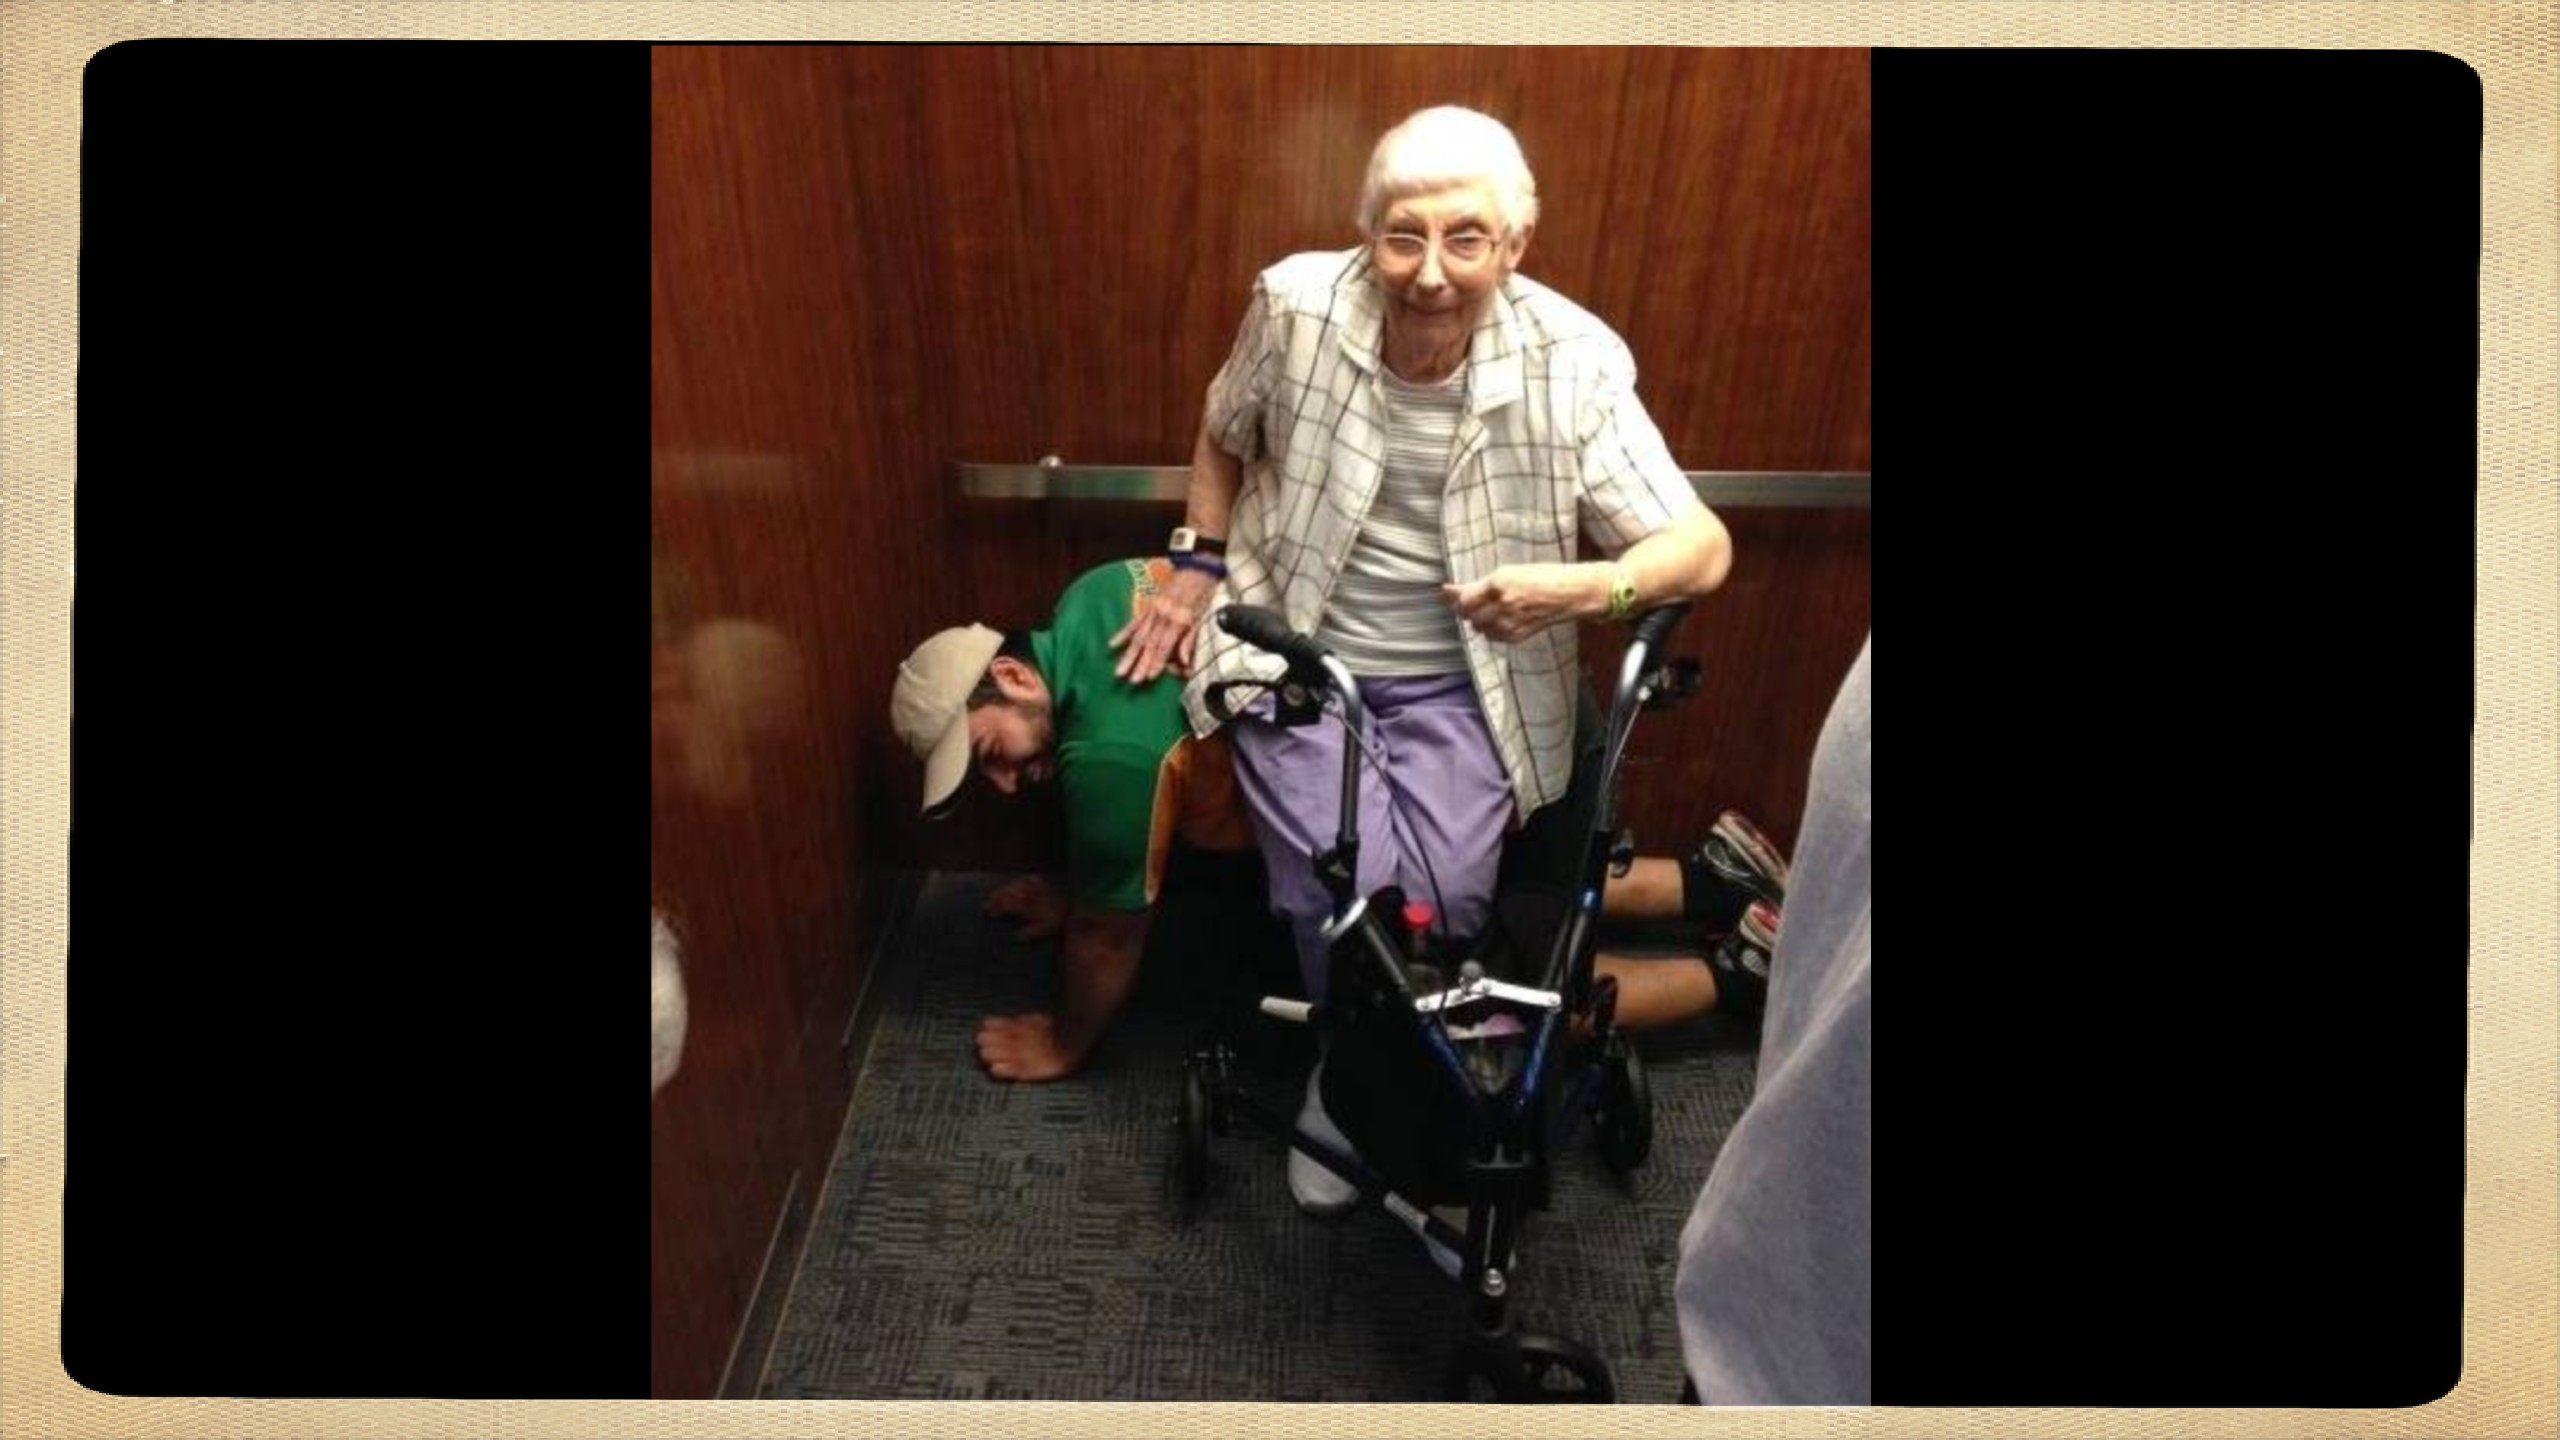 Student acts as human bench after getting stuck in elevator with elderly woman